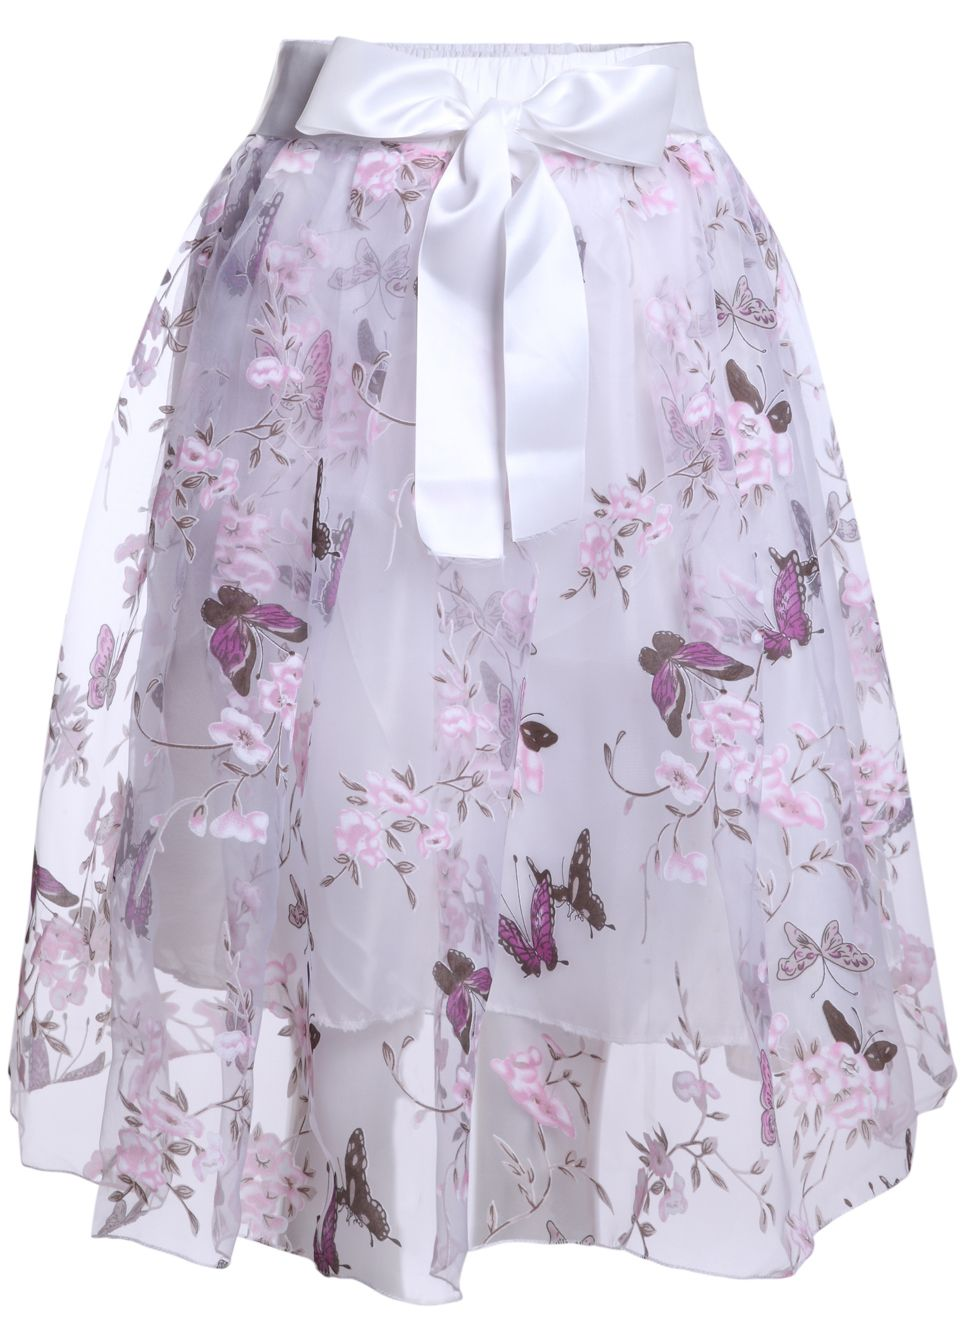 Pink With Bow Butterfly Print Flare Dress - Sheinside.com